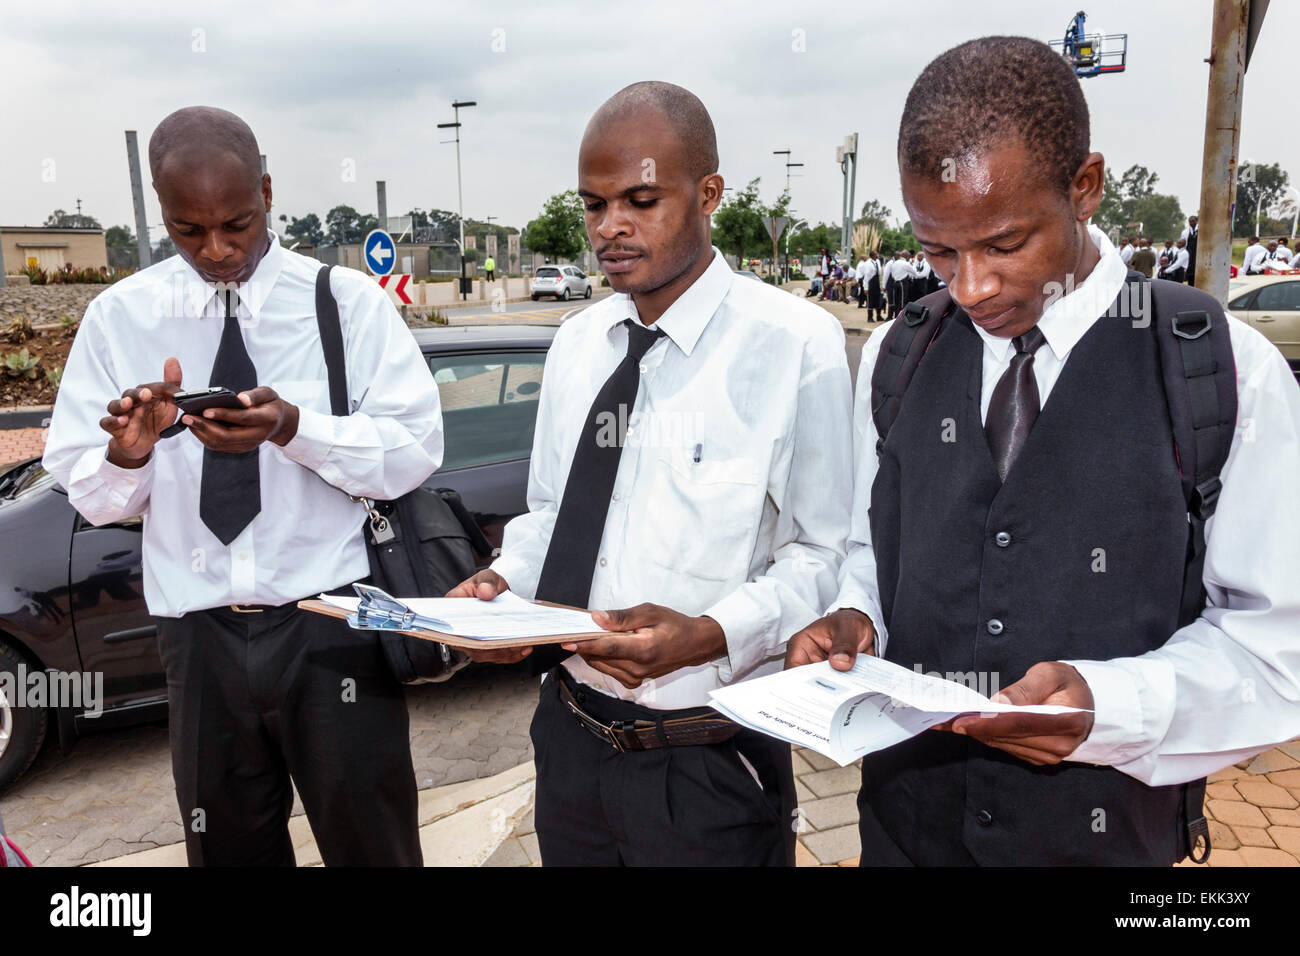 Game for coworkers - Johannesburg South Africa African Nasrec Fnb Soccer City Stadium The Calabash Black Man Coworkers Uniform Before Game Football Servers Waiters Manager